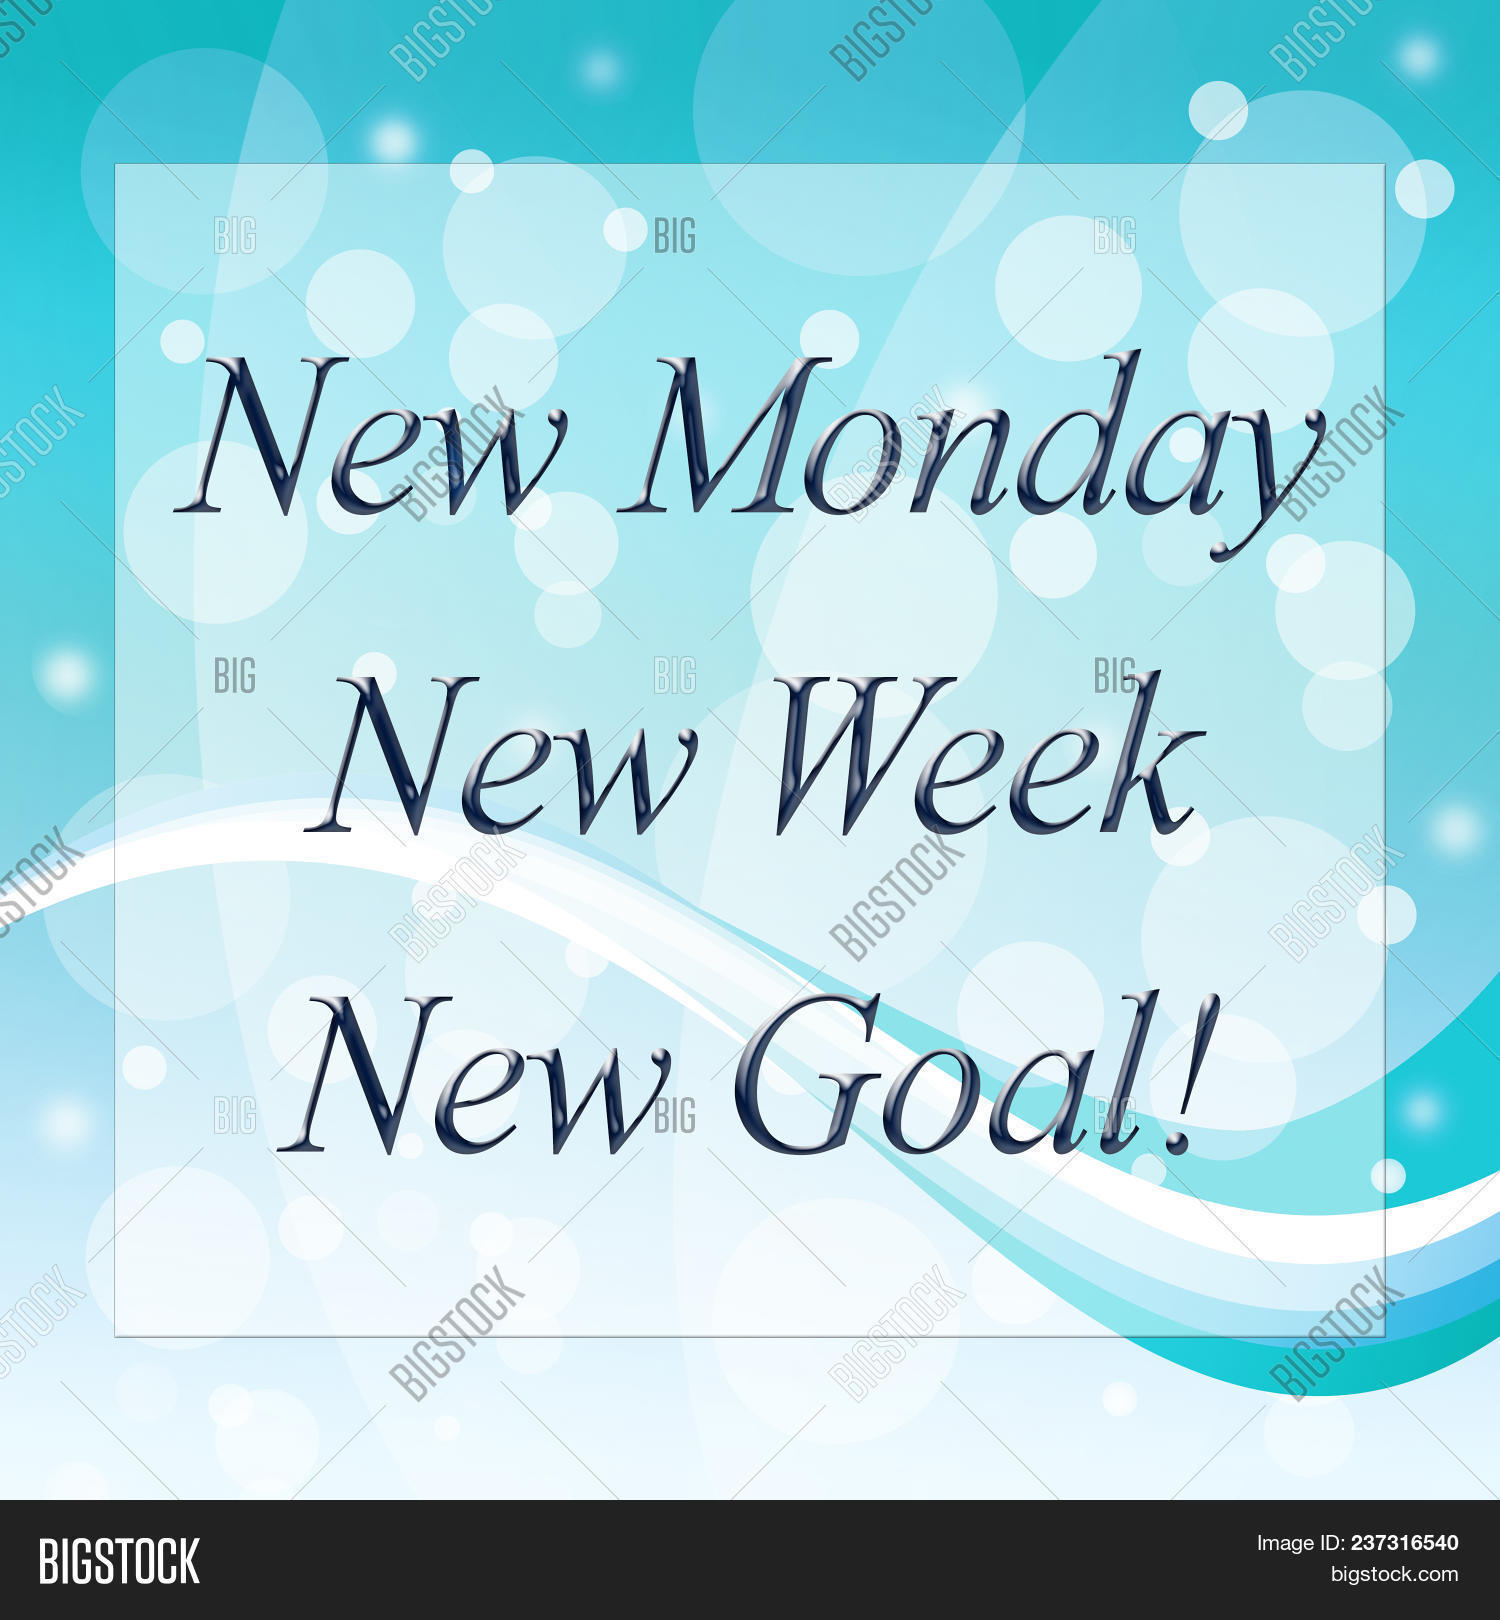 New Week Quotes - Image & Photo (Free Trial) | Bigstock